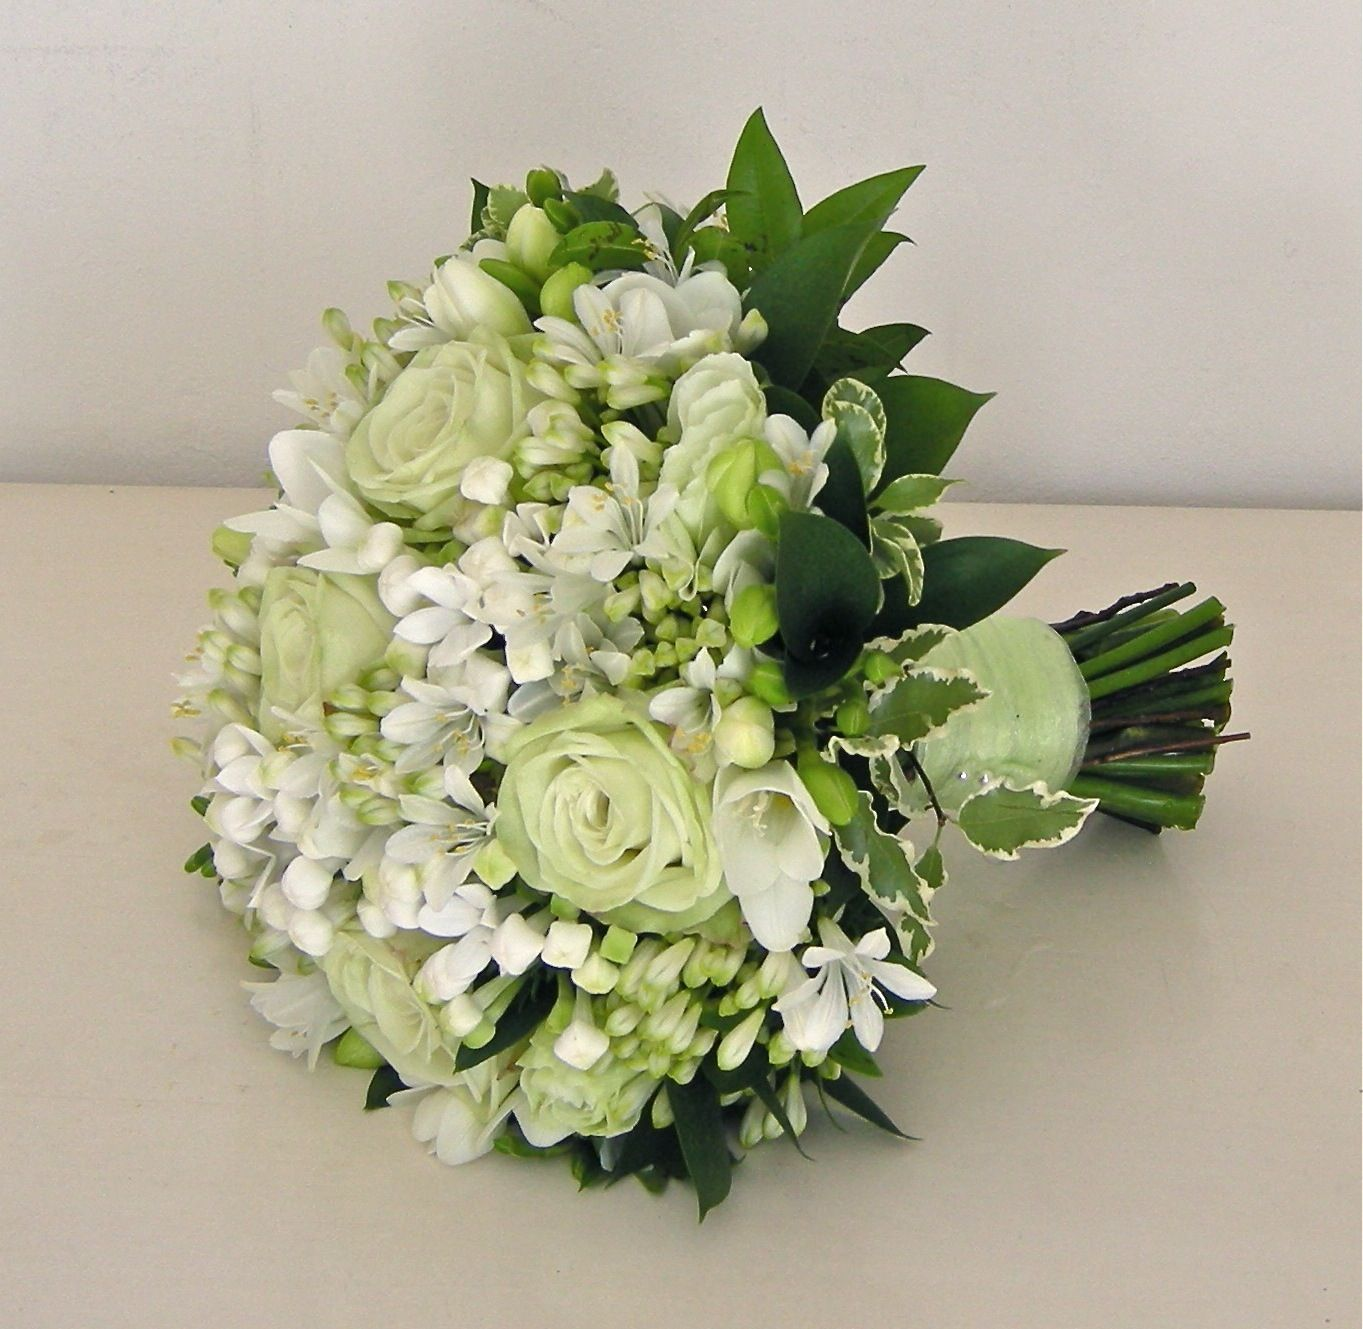 Pale green wedding bouquets flowers decoration wedding photos pale green wedding bouquets flowers decoration wedding photos pictures by weddingsofjoy dhlflorist Image collections